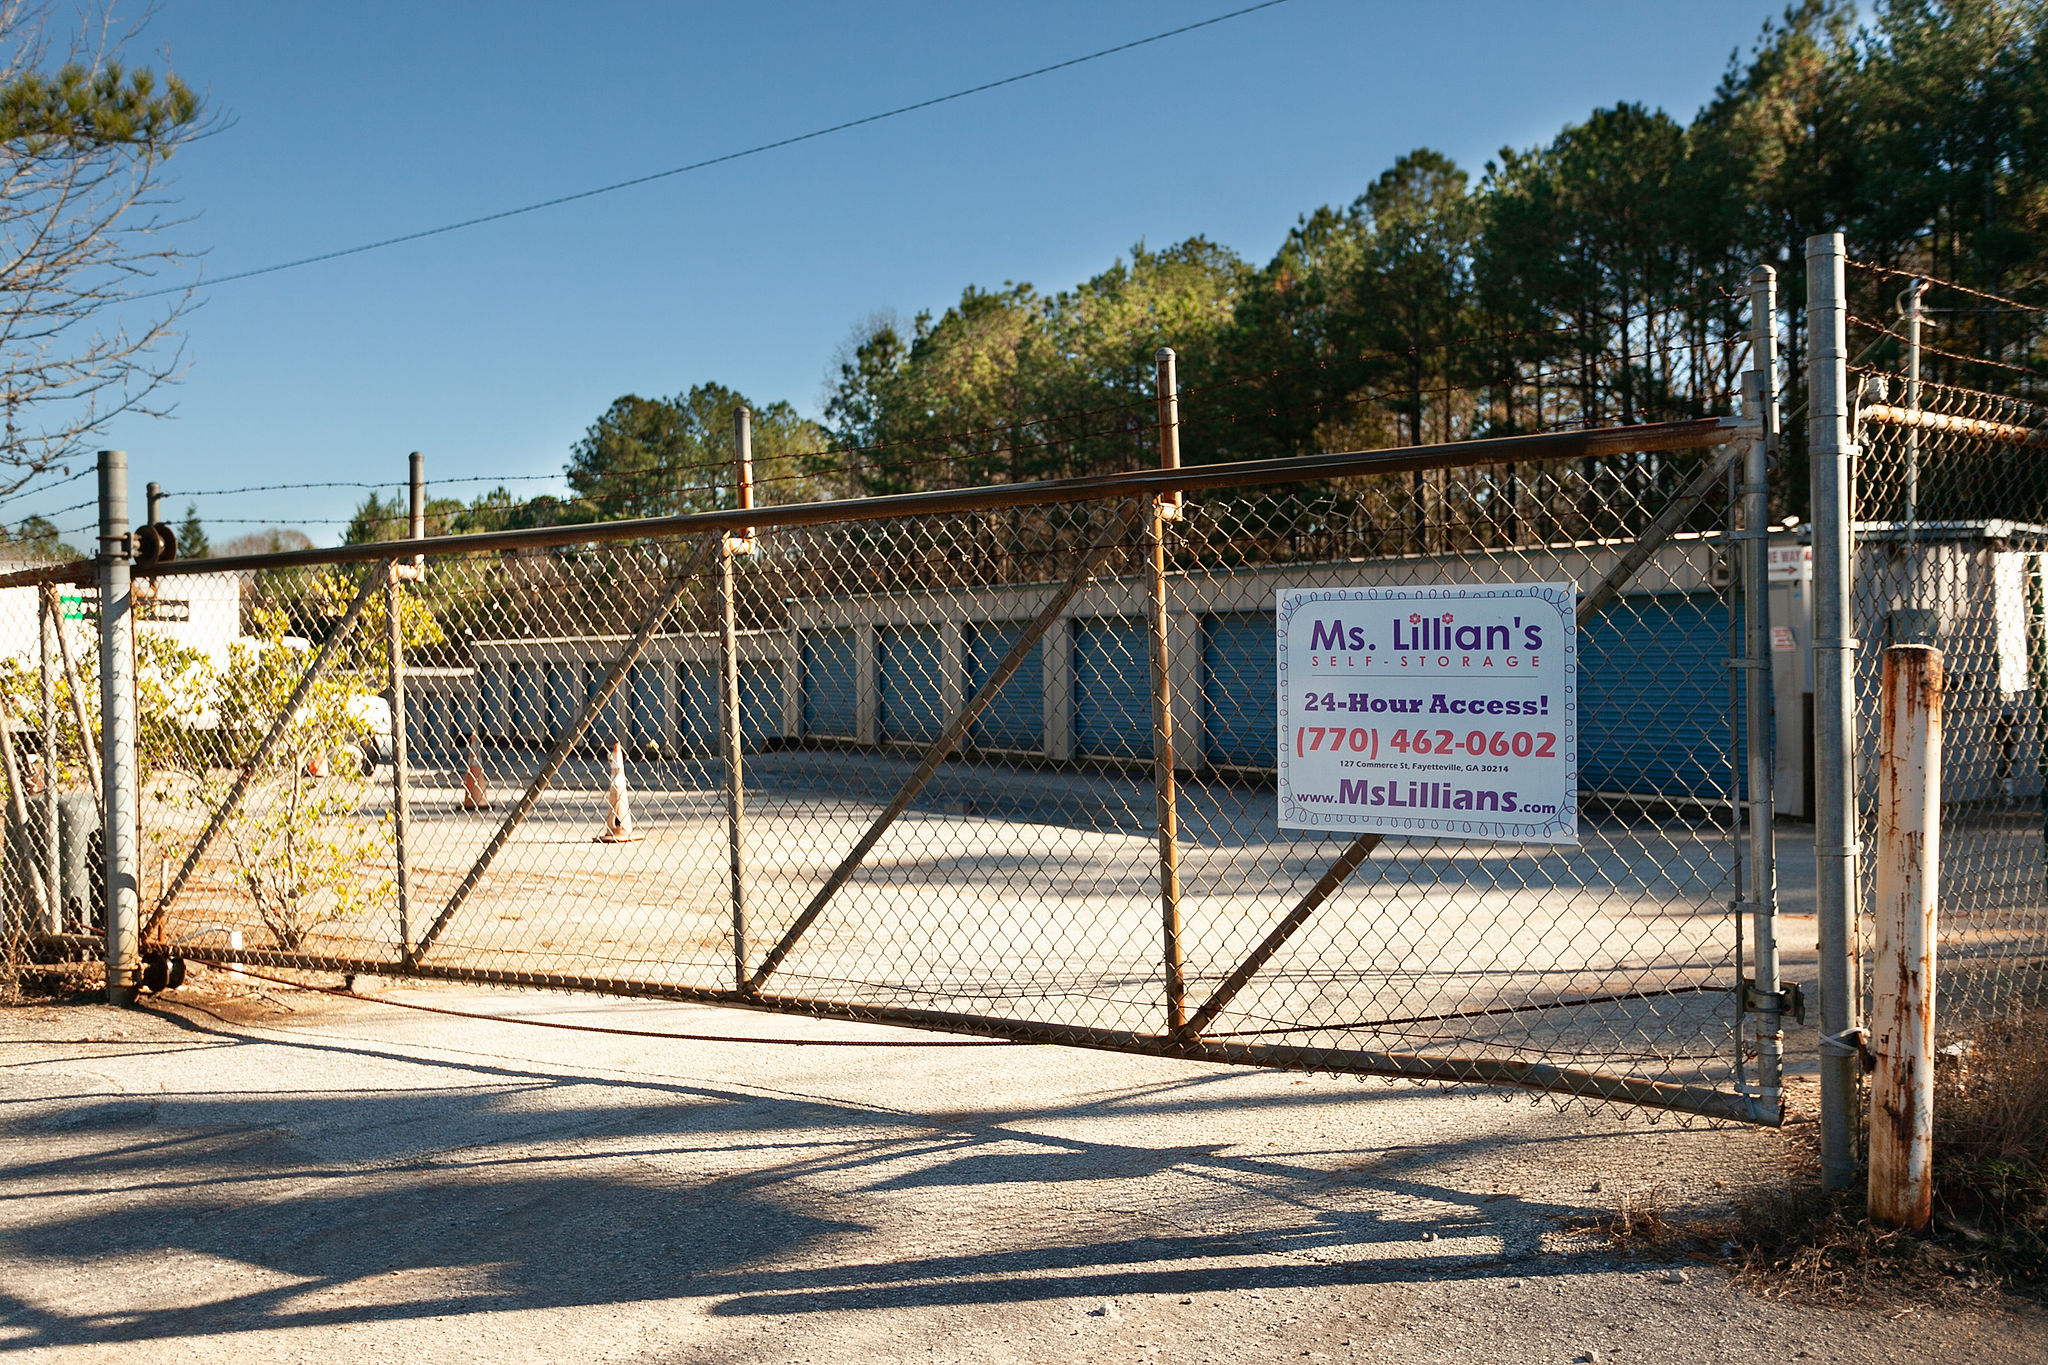 Ms. Lillian's Self-Storage - Fayetteville